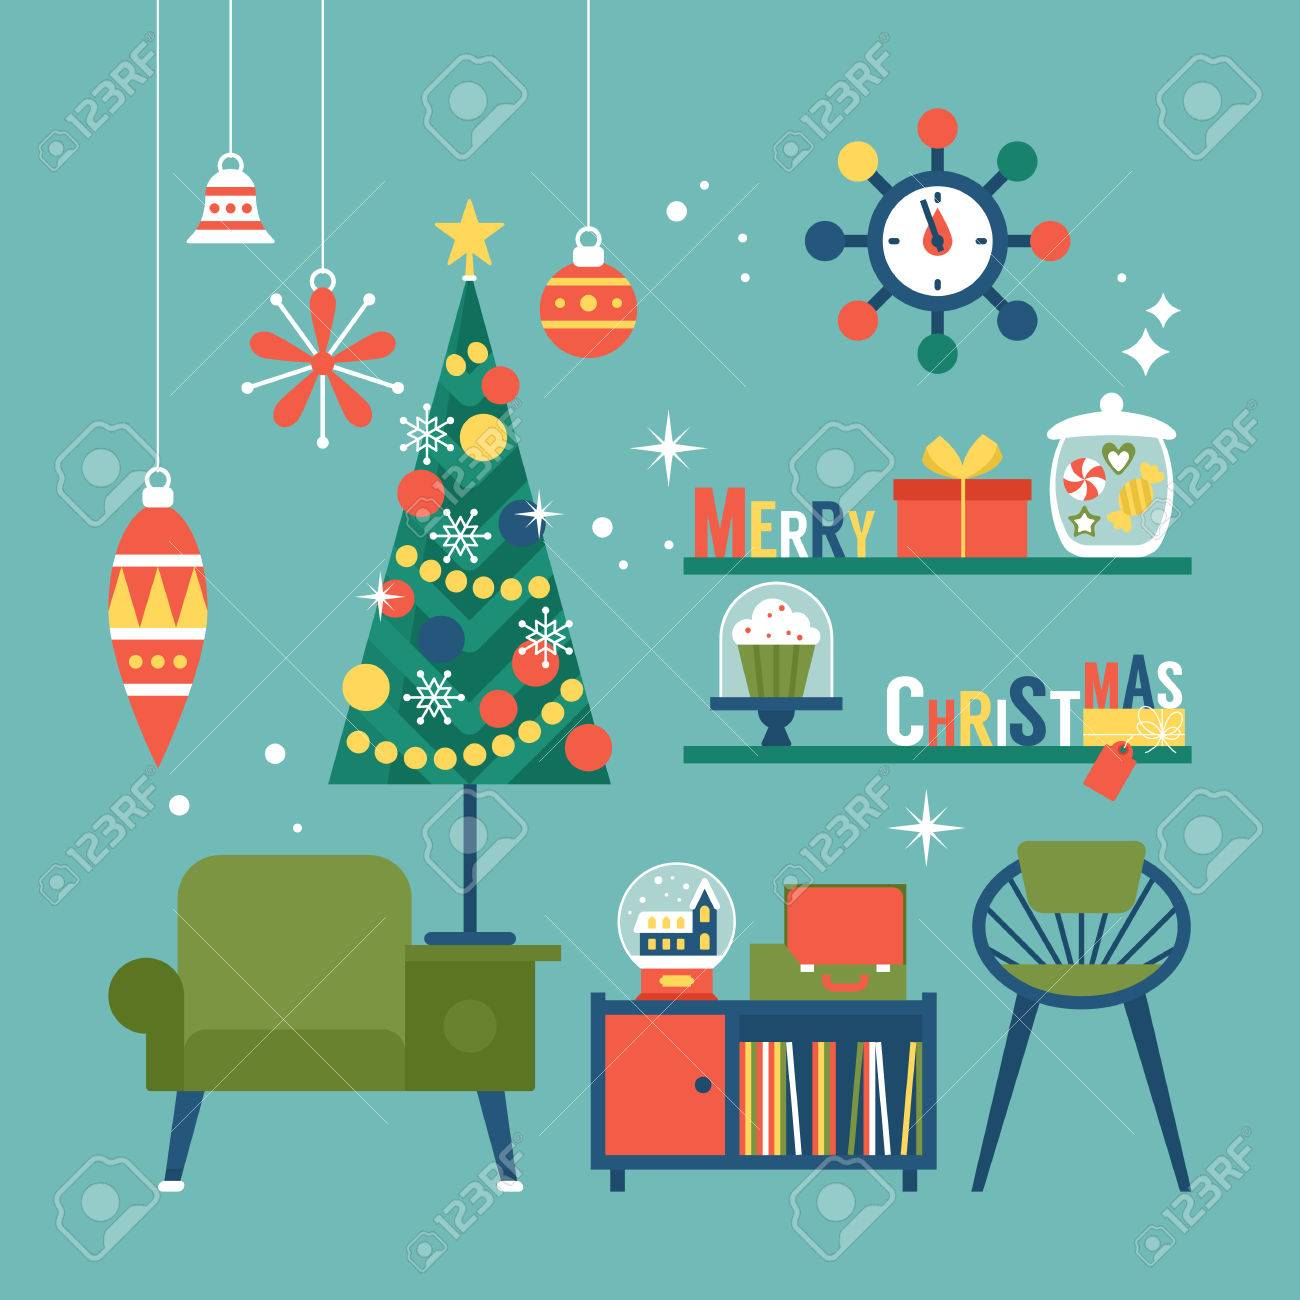 Modern creative Christmas greeting card design with mid century furnitureand Christmas decorations. Vector illustration - 64235524